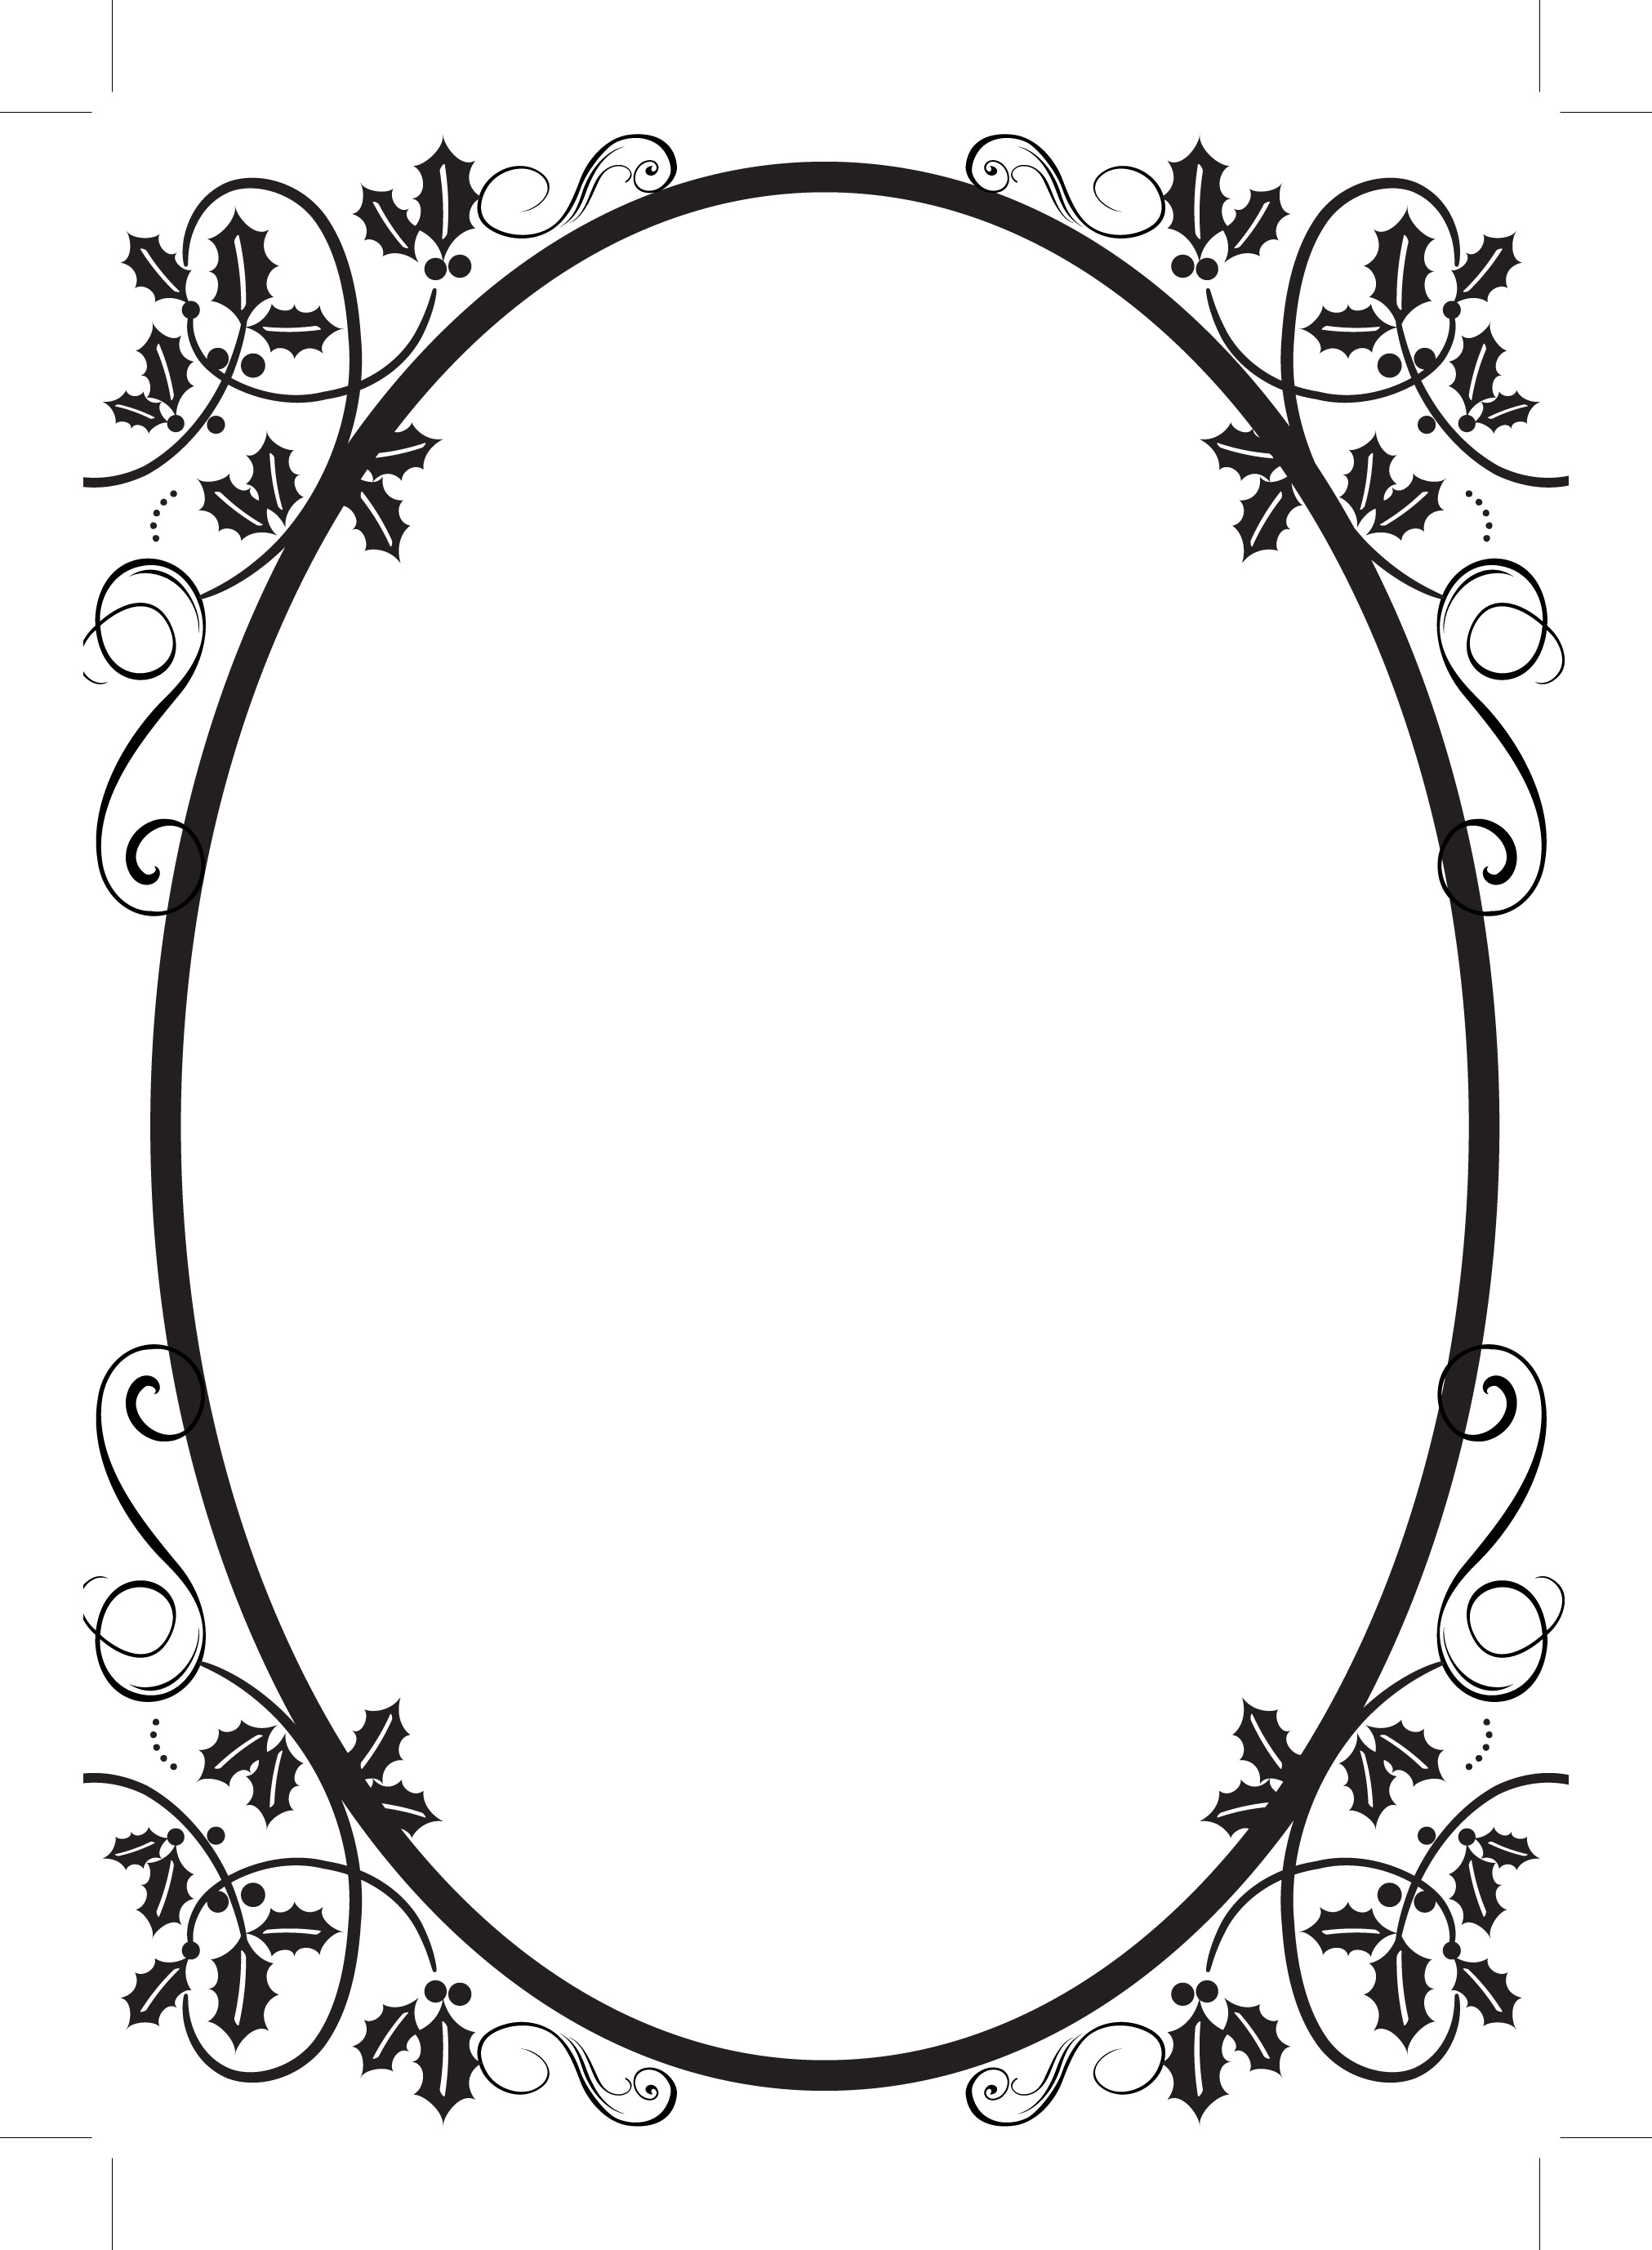 Funeral Border Clipart